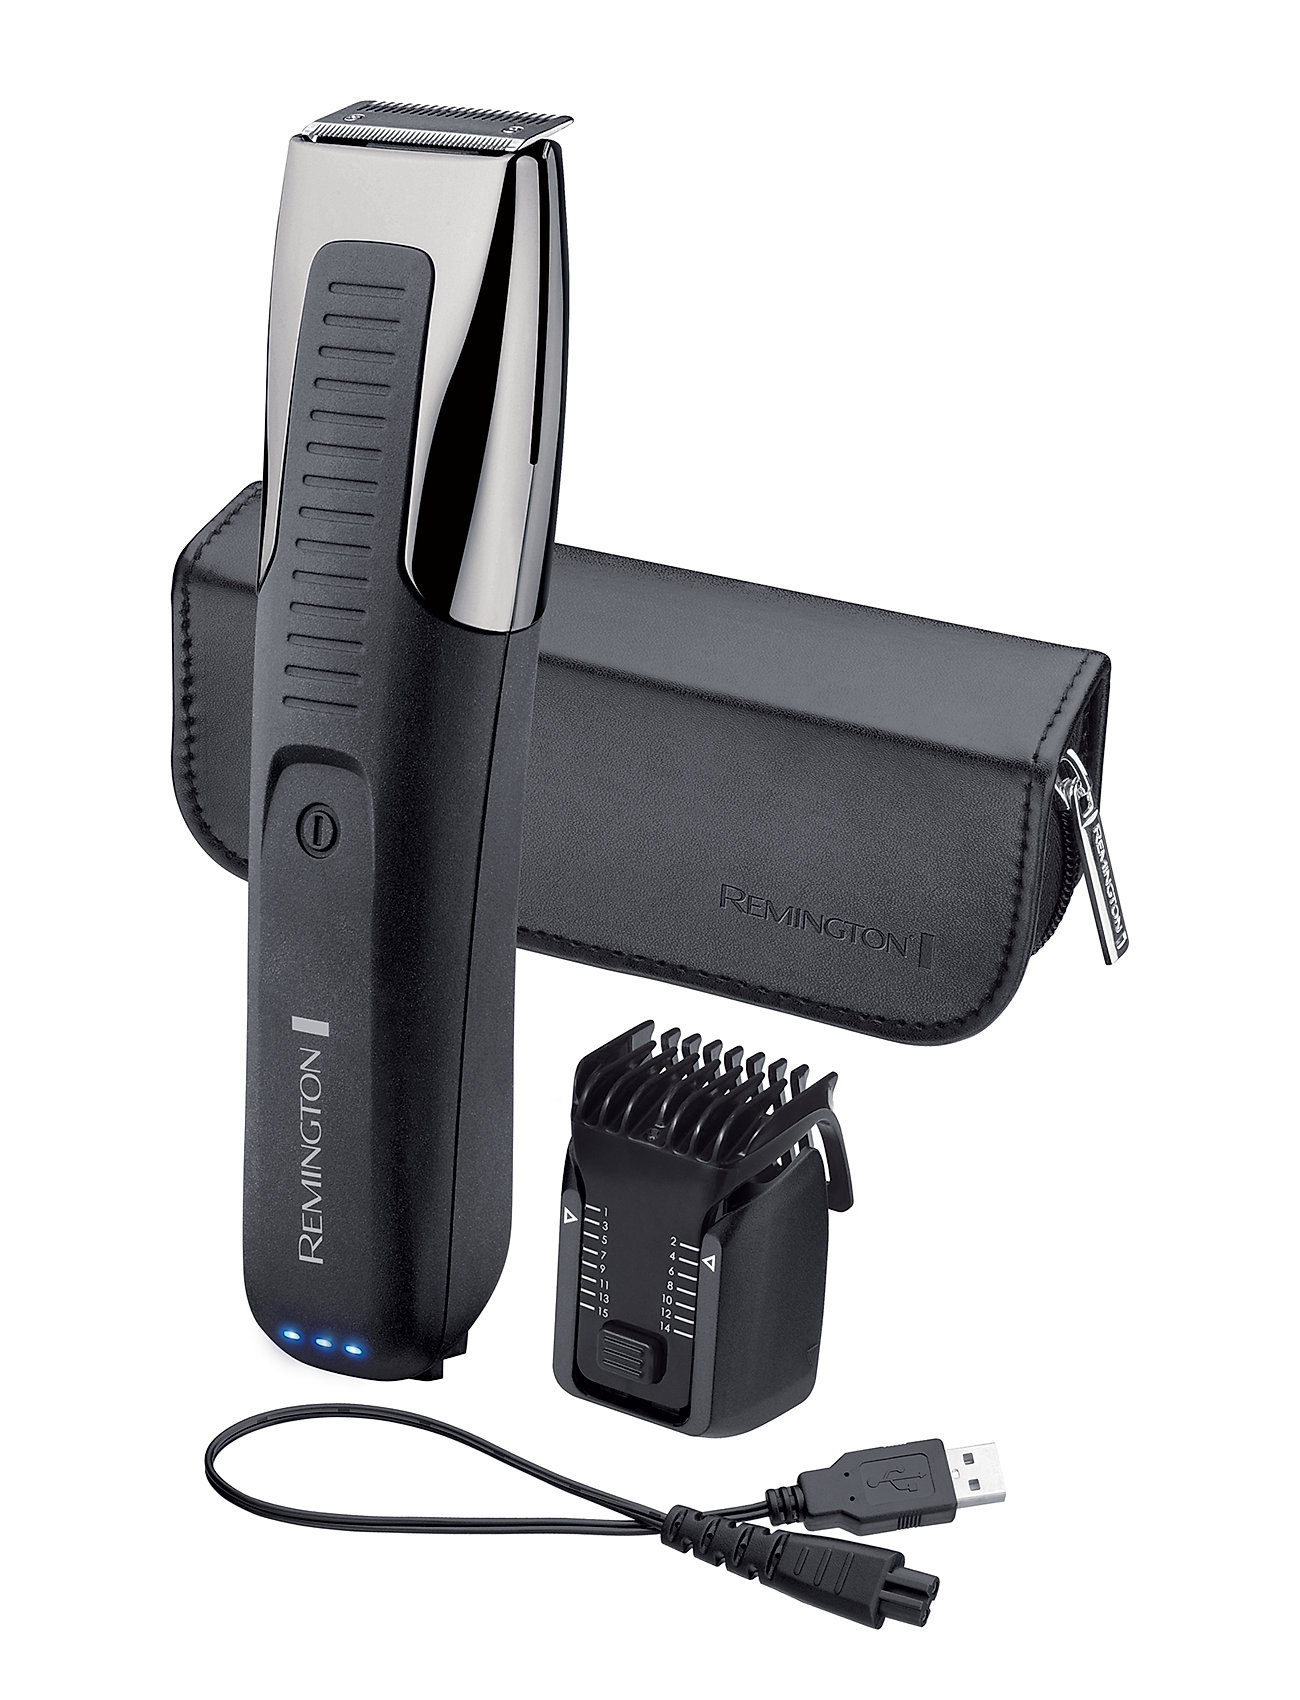 Remington MB4200 E51 Beard Trimmer - NO COLOR